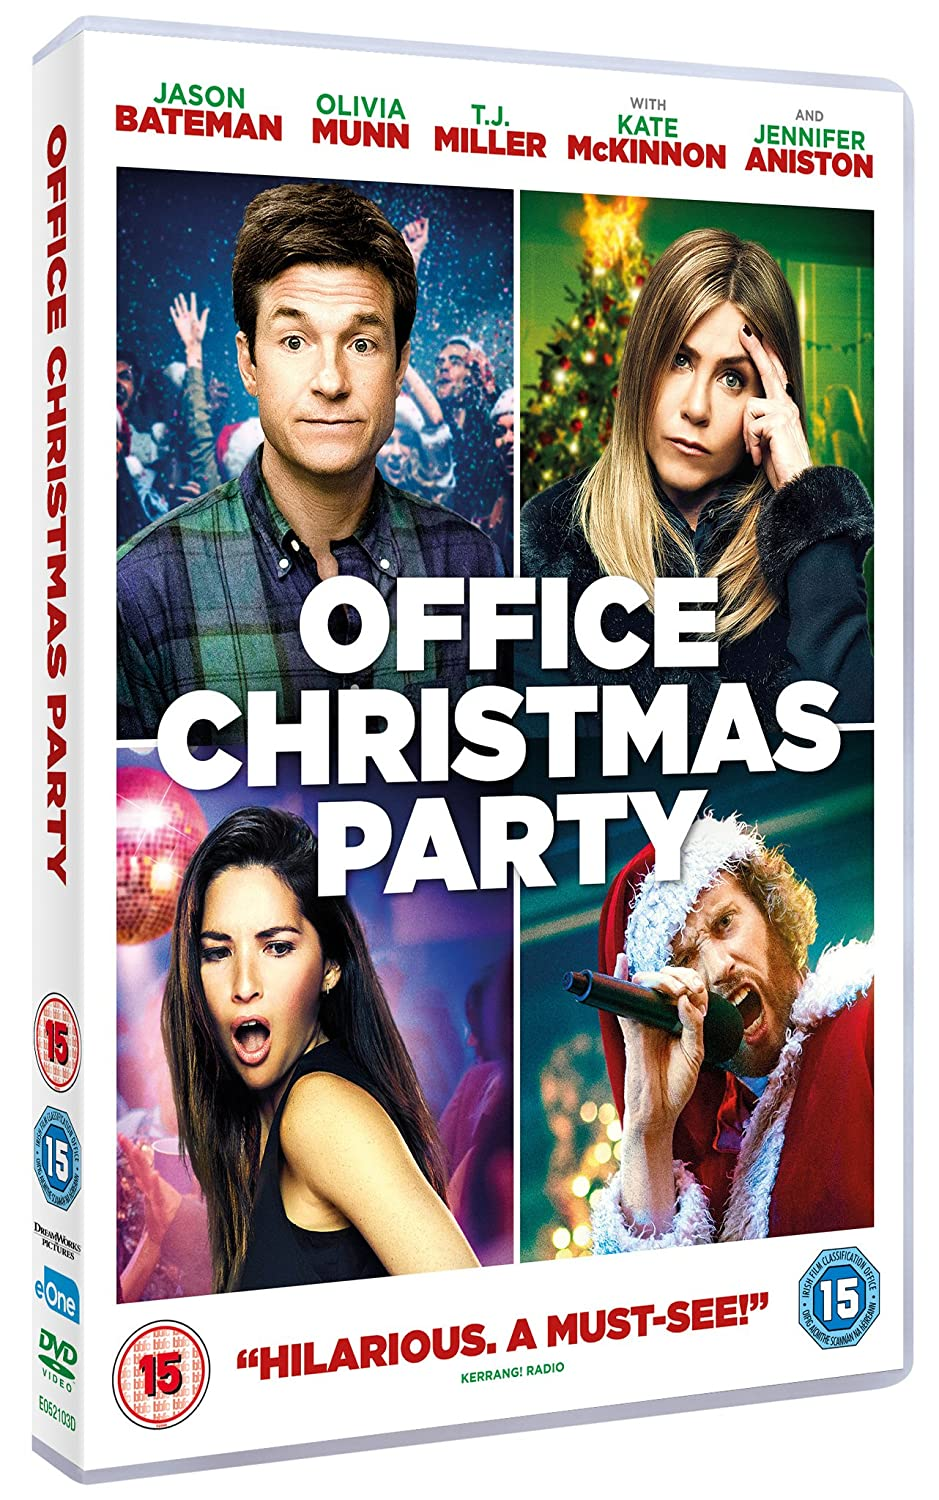 Amazon.com: Office Christmas Party [DVD] [2016]: Movies & TV